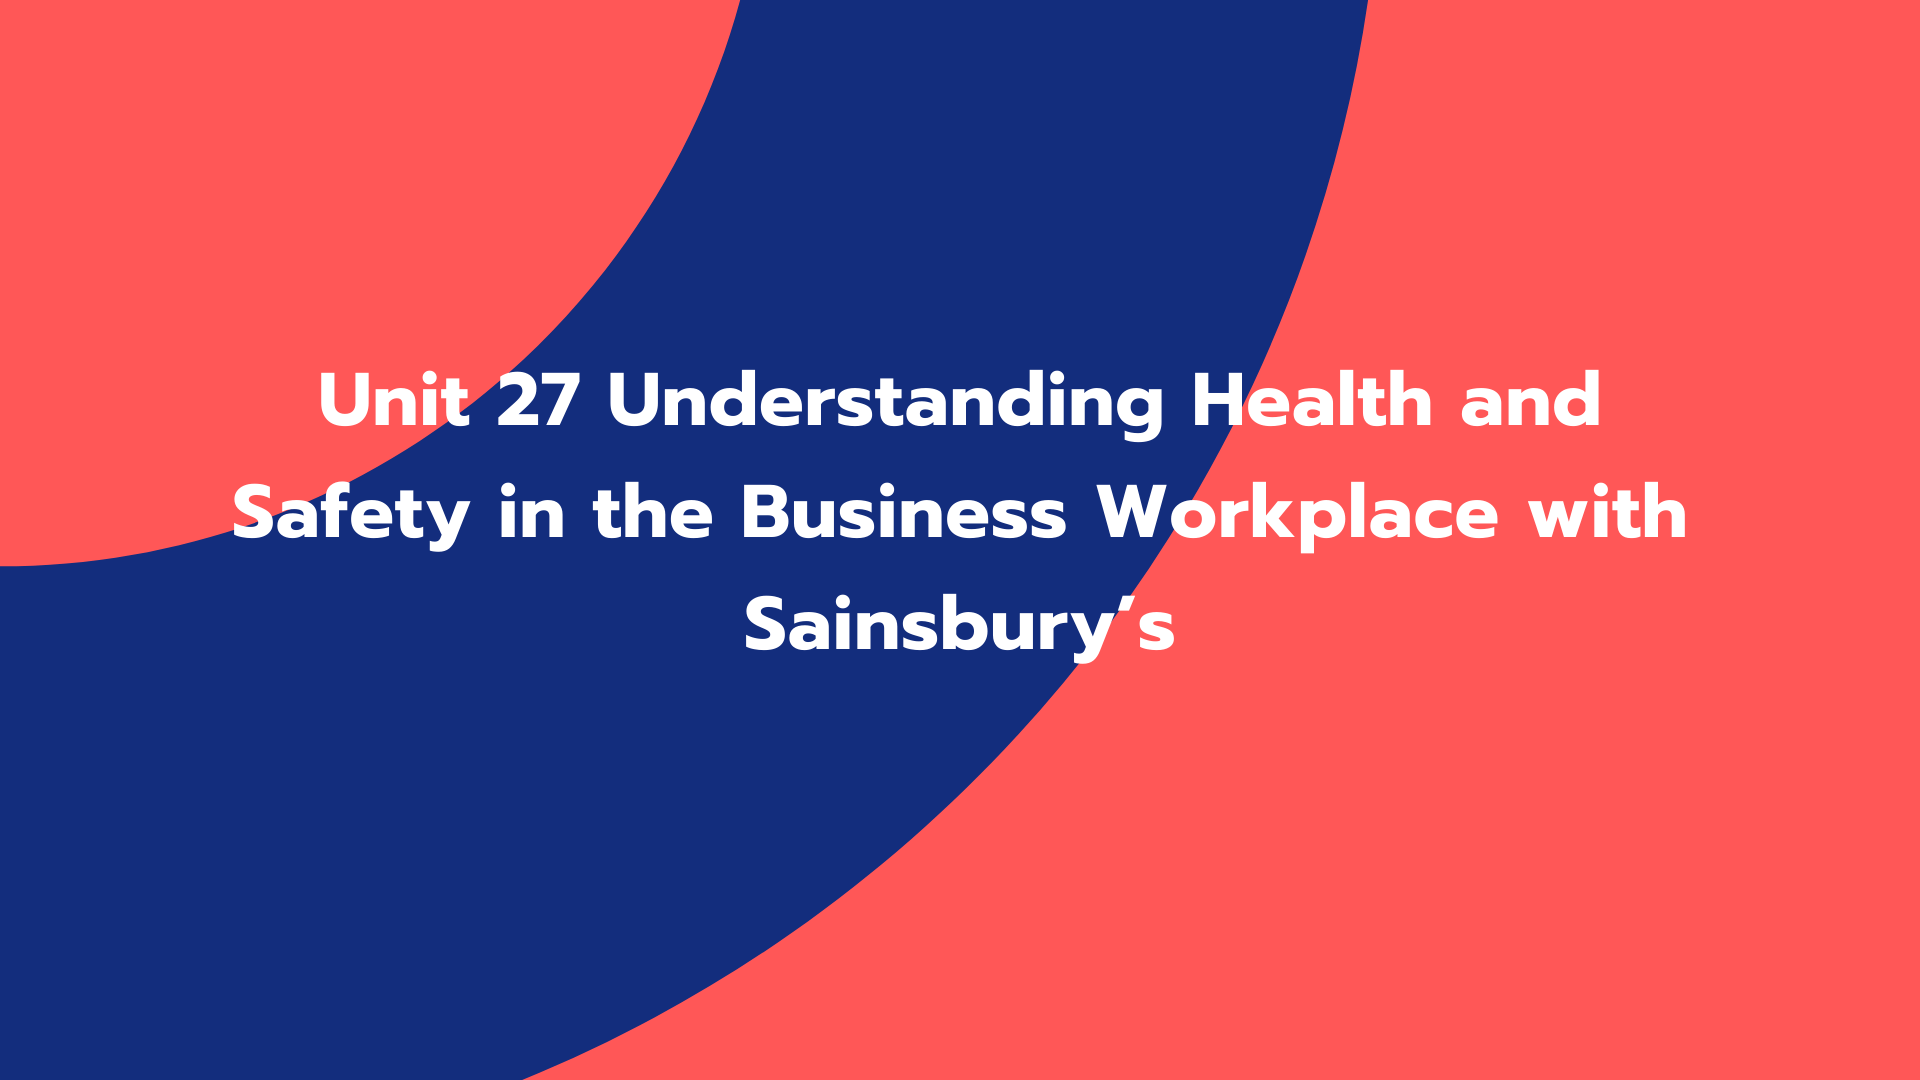 Unit 27 Understanding Health and Safety in the Business Workplace with Sainsbury's